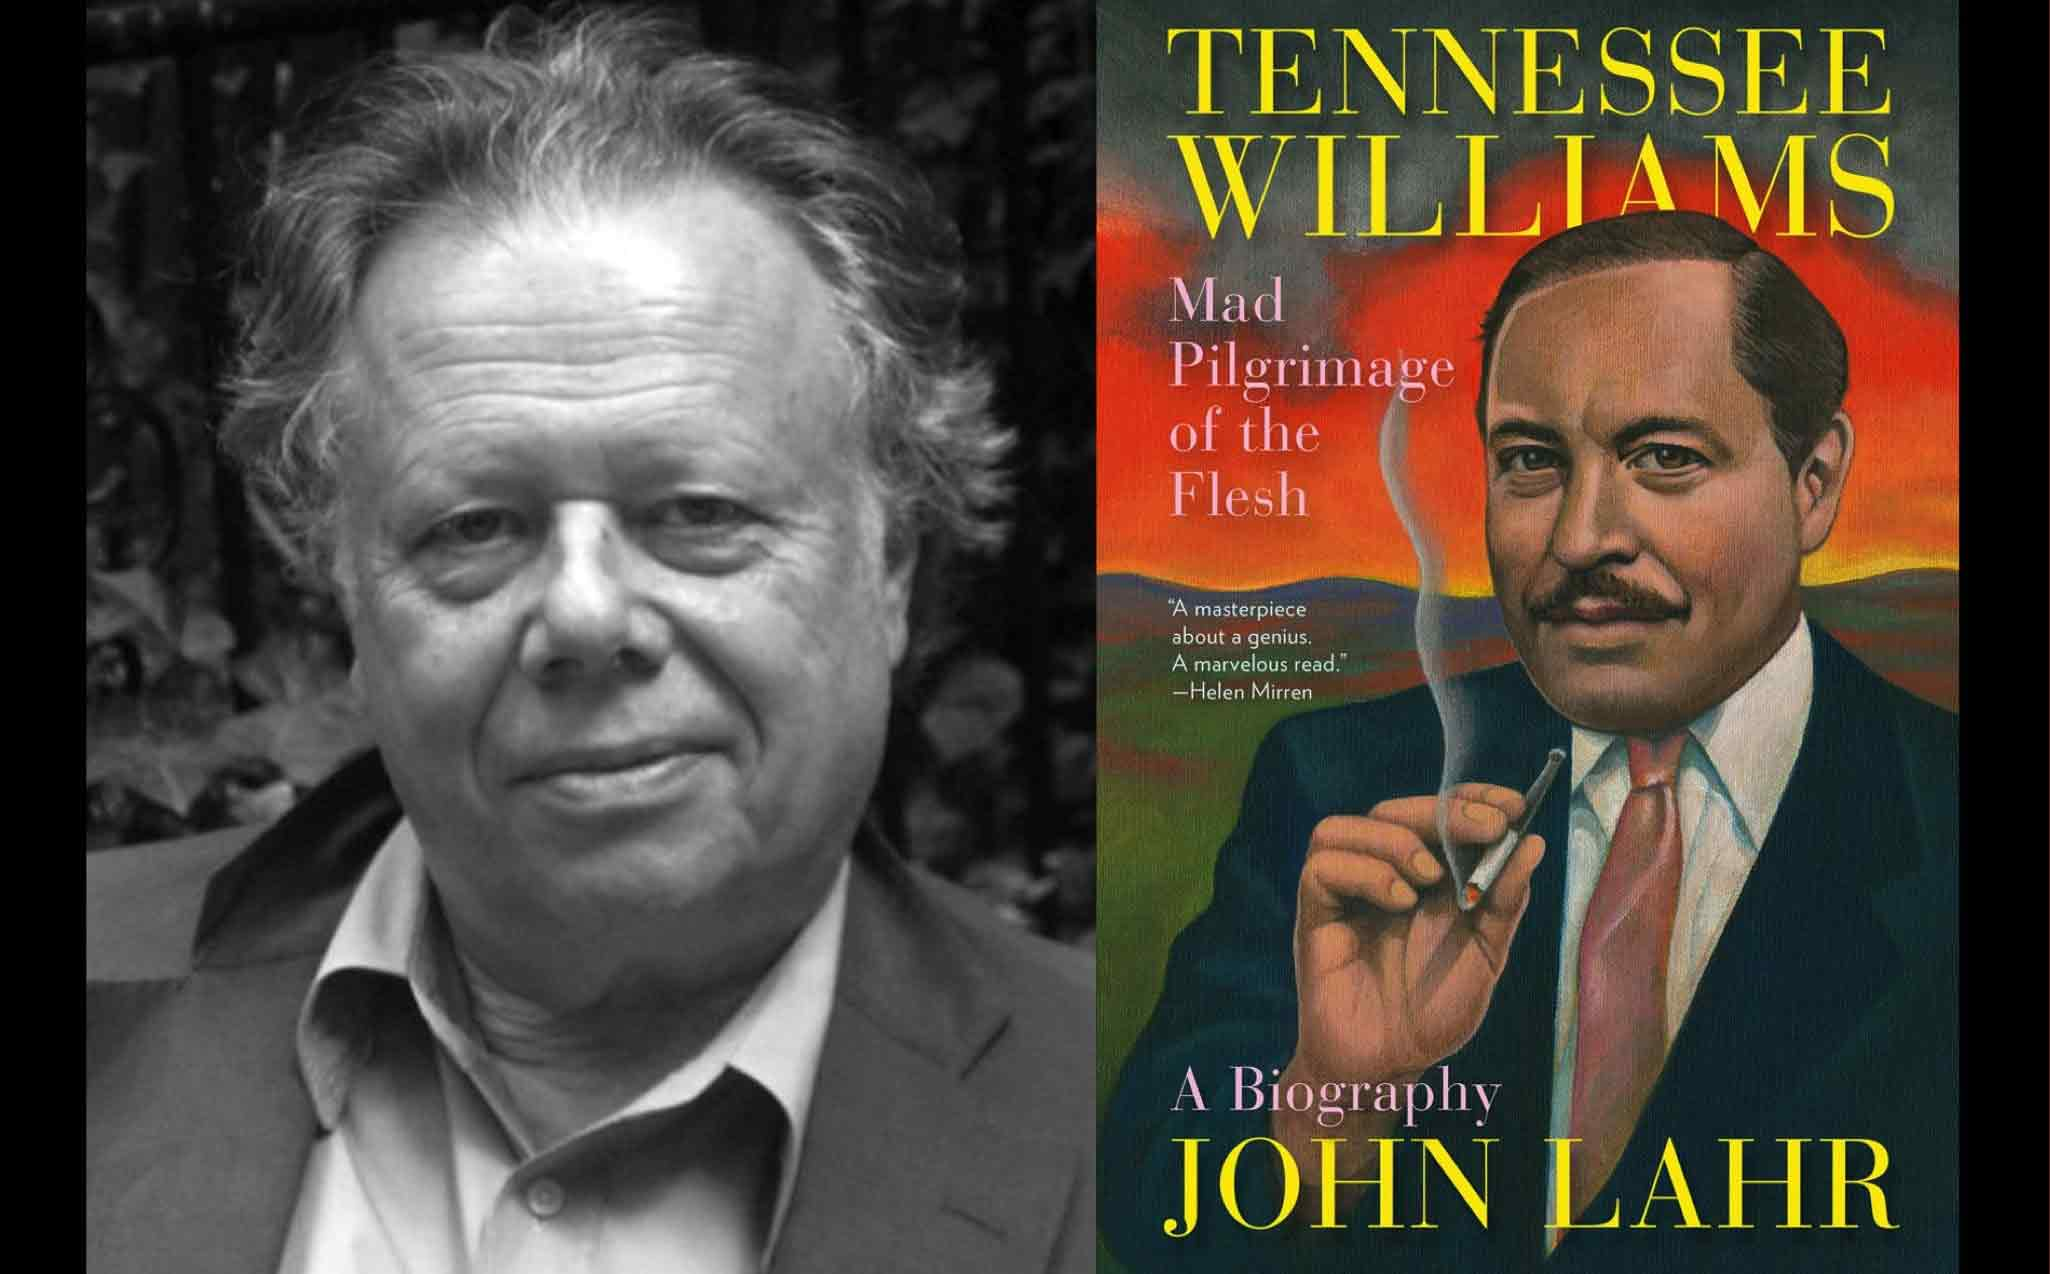 CAT ON A HOT TIN ROOF introduced by Tennessee Williams biographer John Lahr